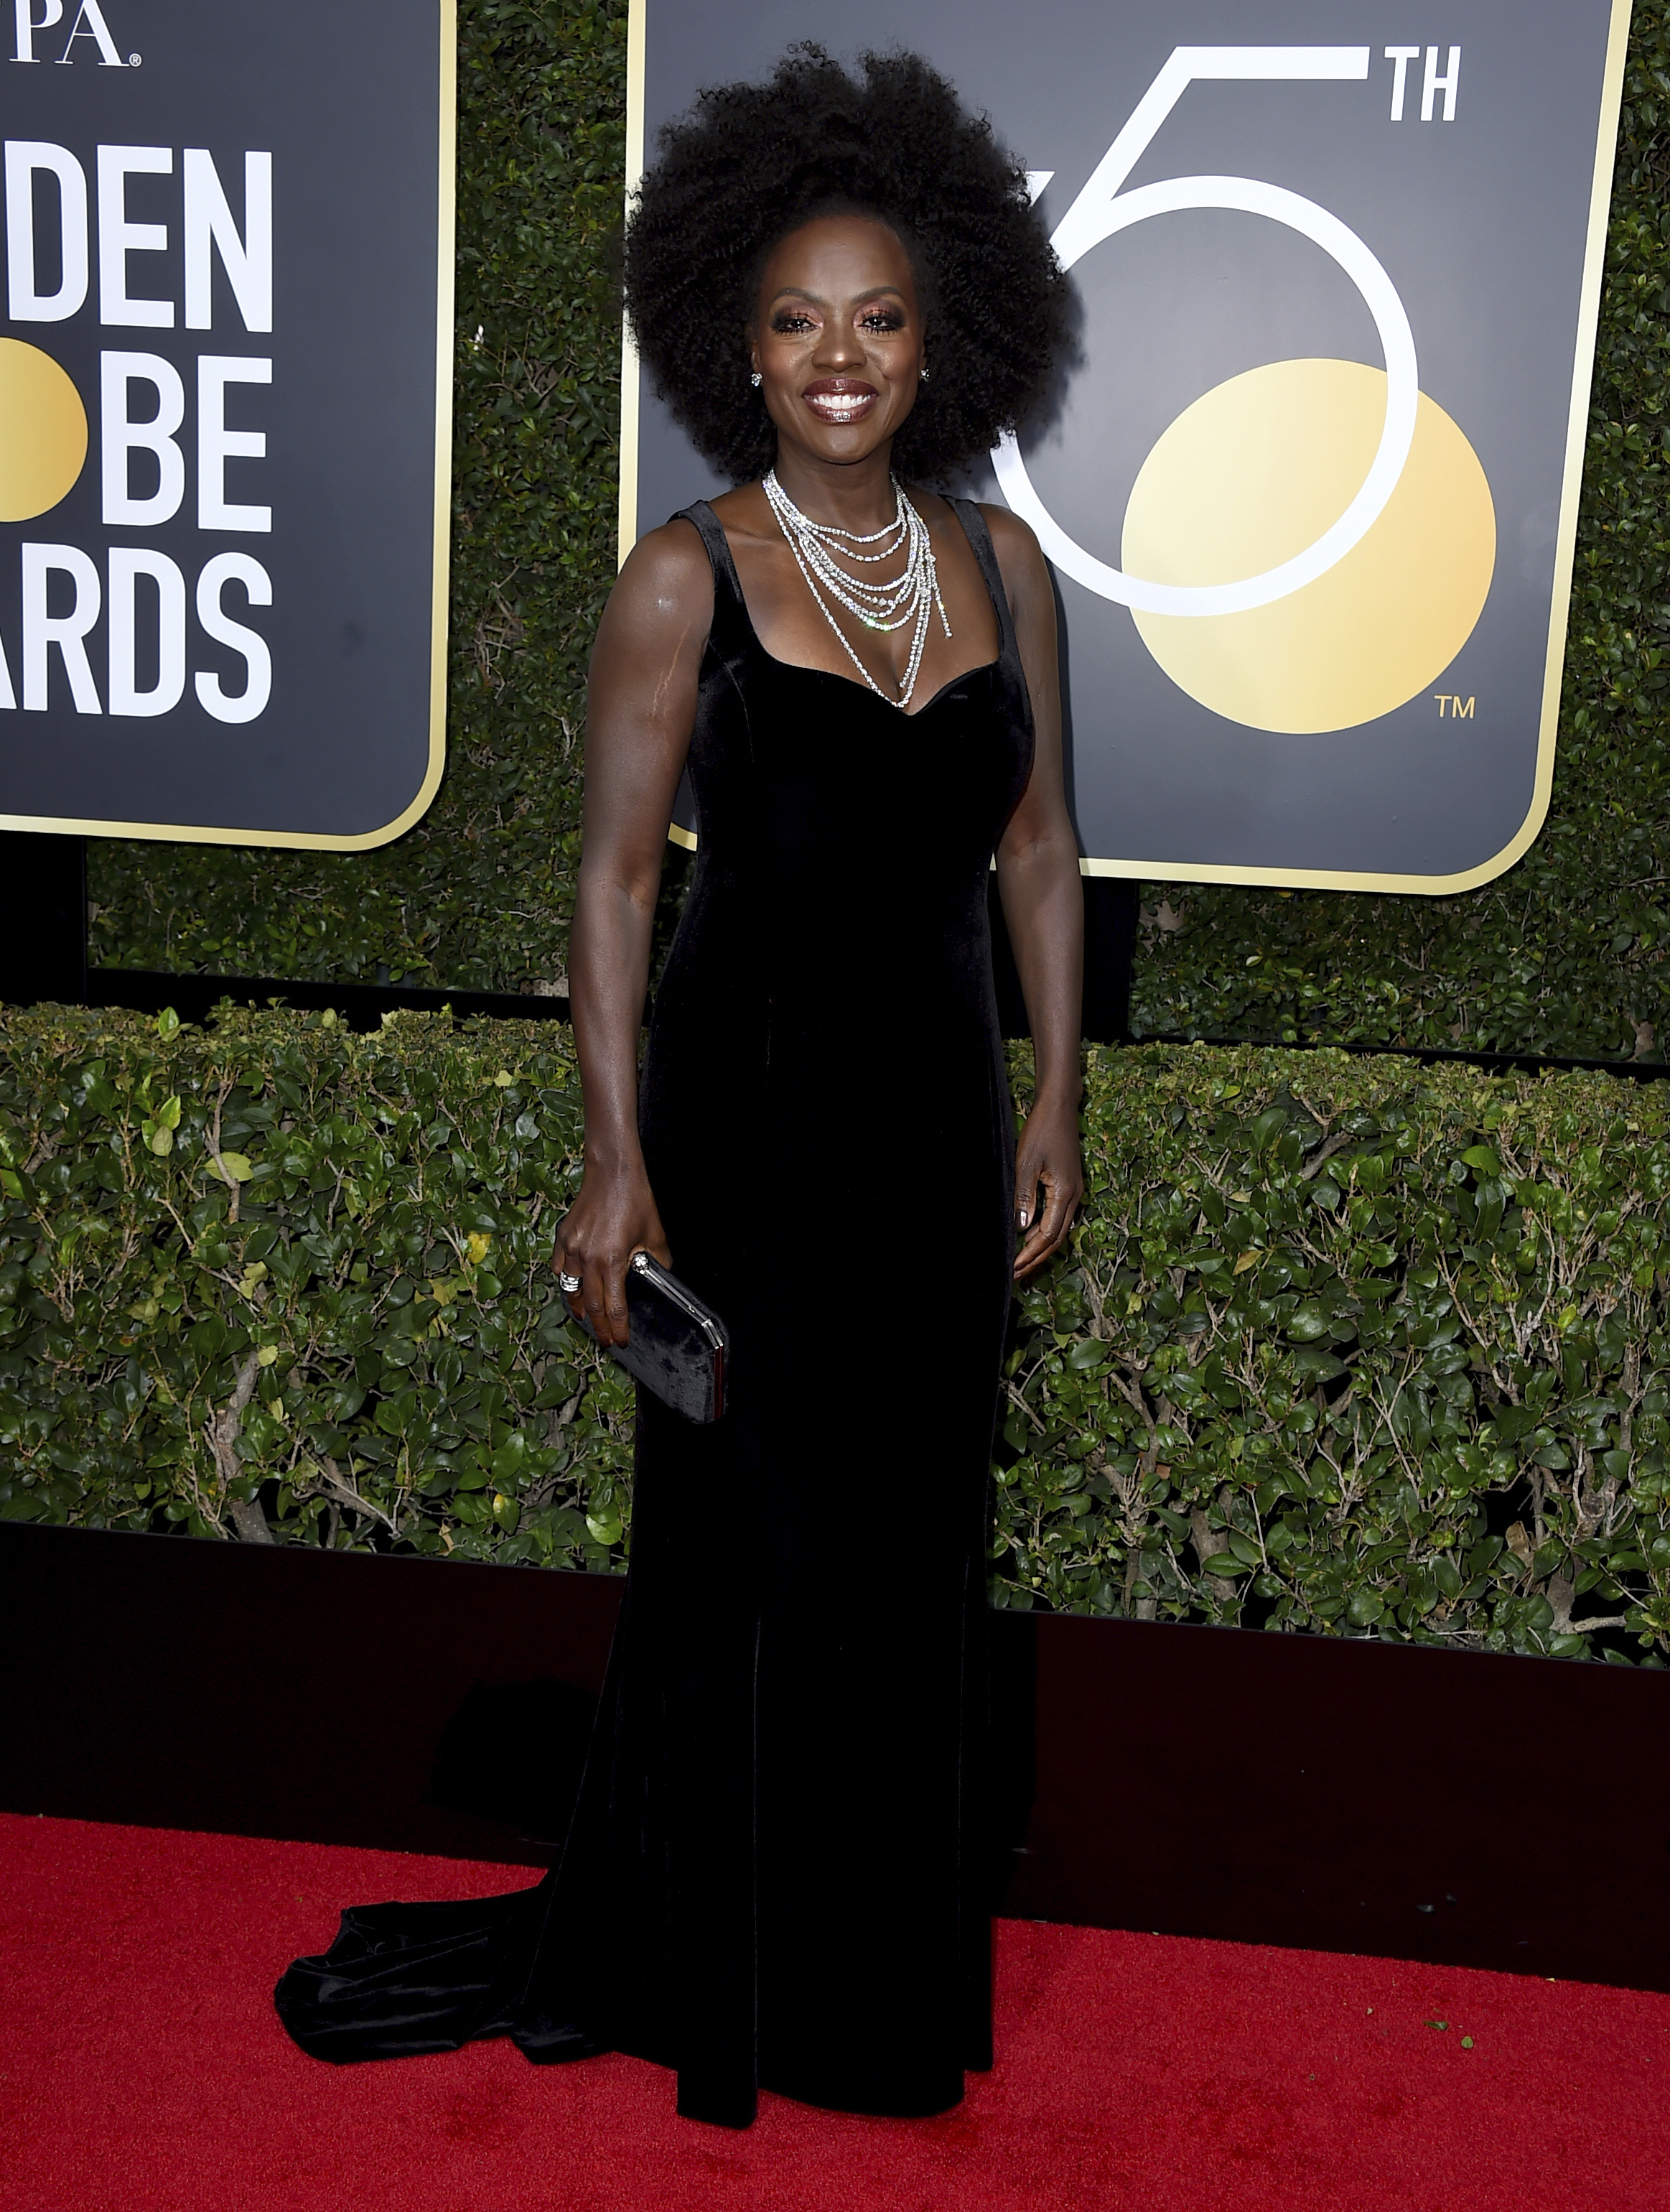 <div class='meta'><div class='origin-logo' data-origin='AP'></div><span class='caption-text' data-credit='Jordan Strauss/Invision/AP'>Viola Davis arrives at the 75th annual Golden Globe Awards at the Beverly Hilton Hotel on Sunday, Jan. 7, 2018, in Beverly Hills, Calif.</span></div>